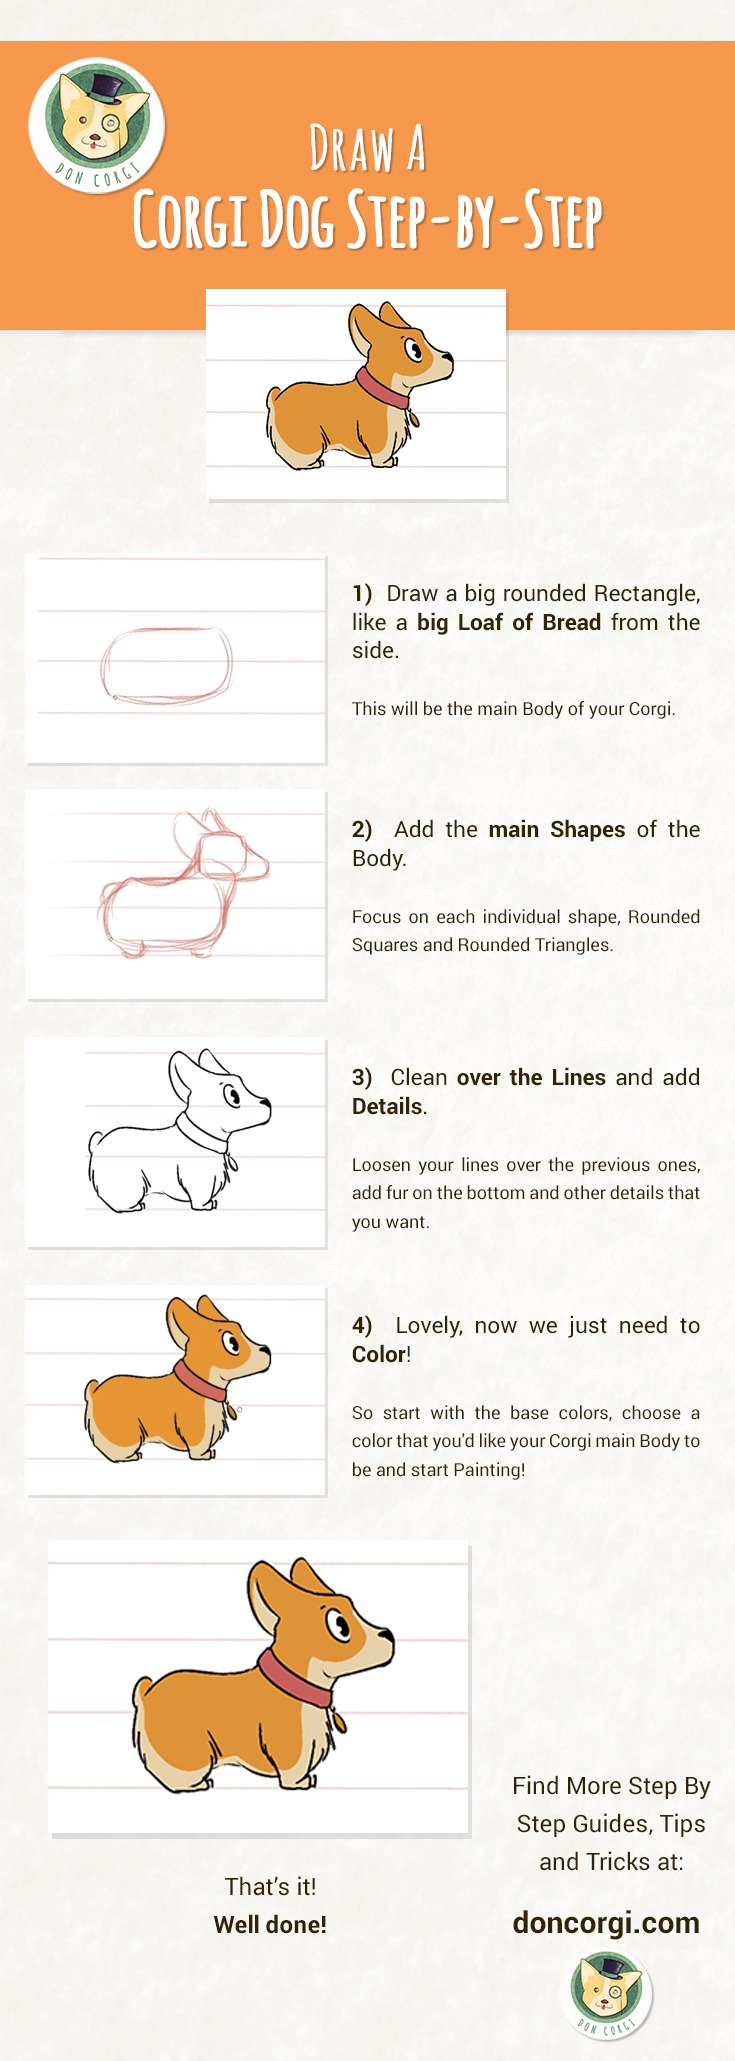 How to Draw a Dog: Draw a Corgi Pup Step by Step